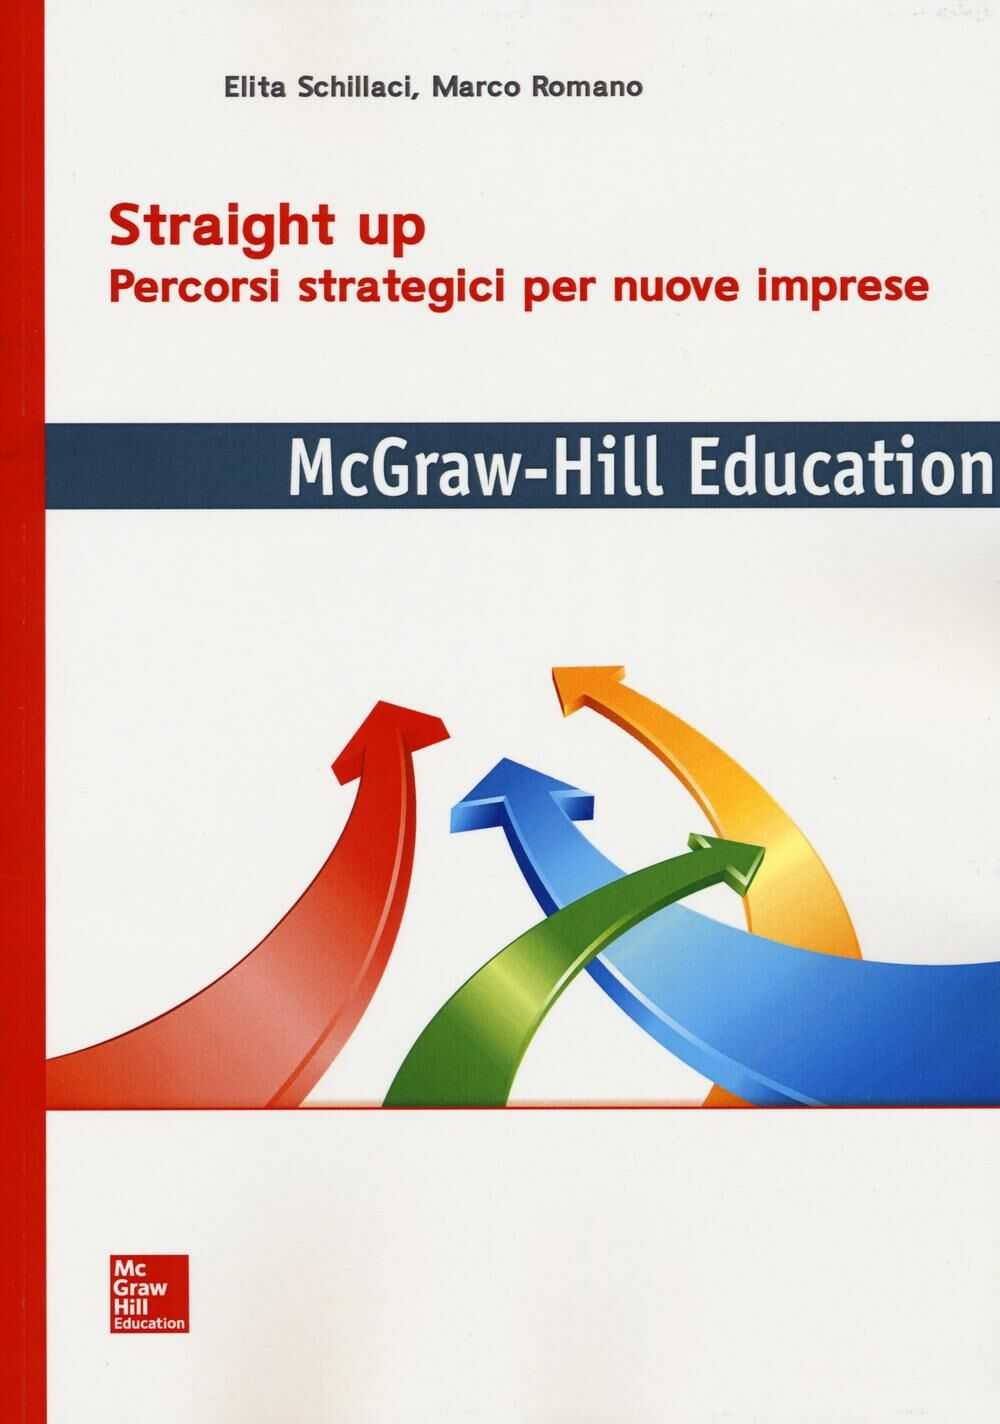 Straight up. Percorsi strategici per nuove imprese